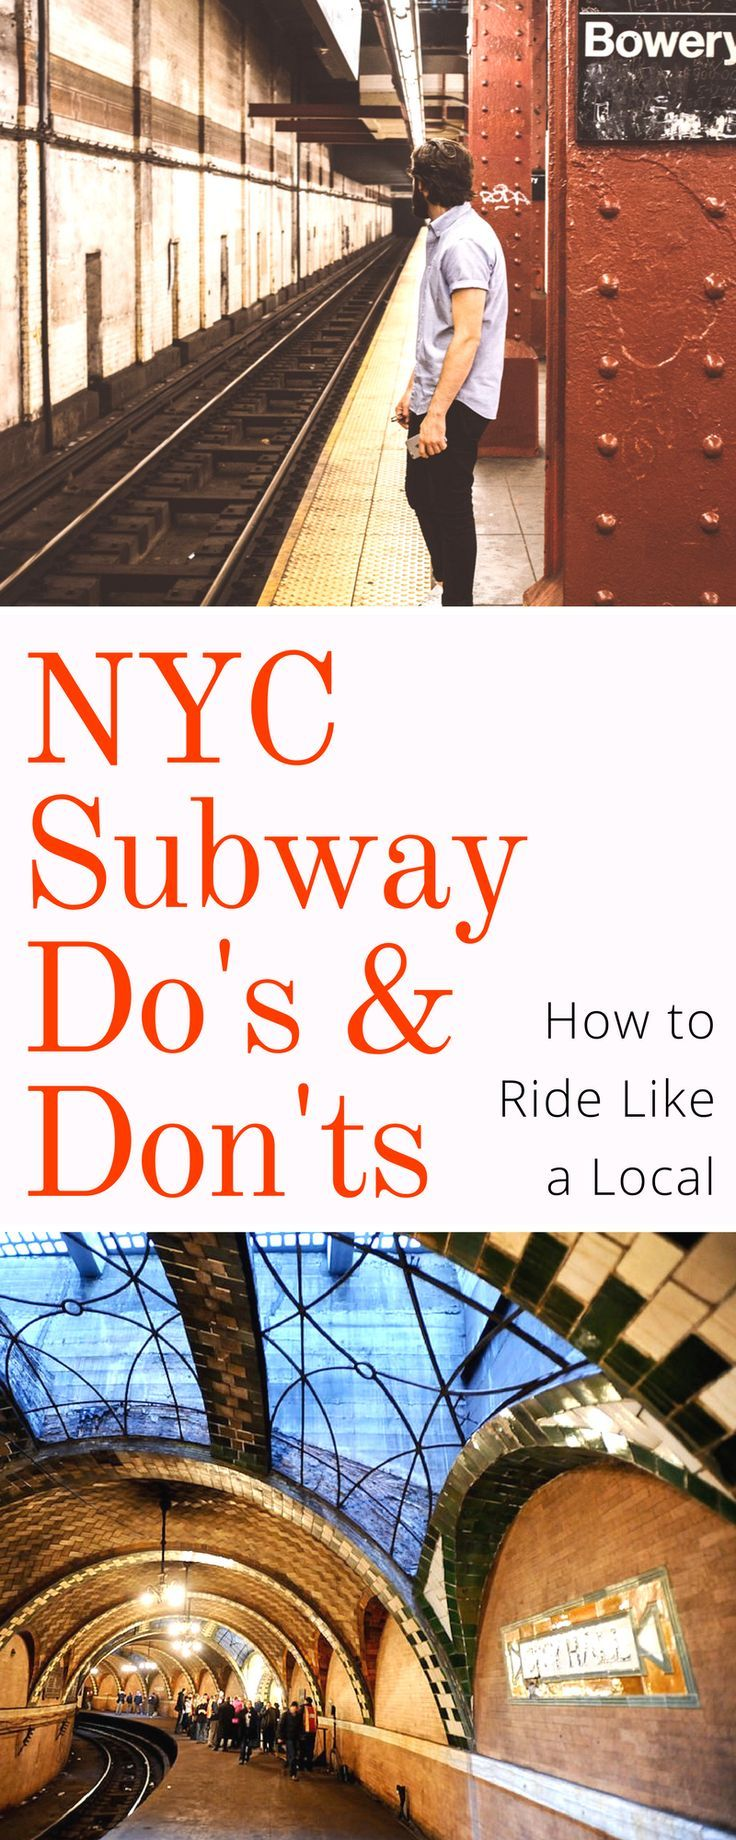 Howto Readthe Nyc Subway Map.Tips For Riding The Nyc Subway System Explore The World Nyc